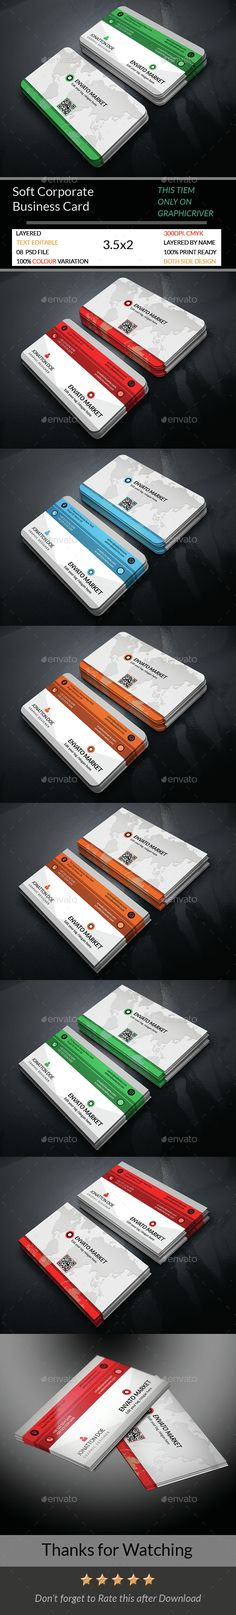 Soft Corporate Business Card